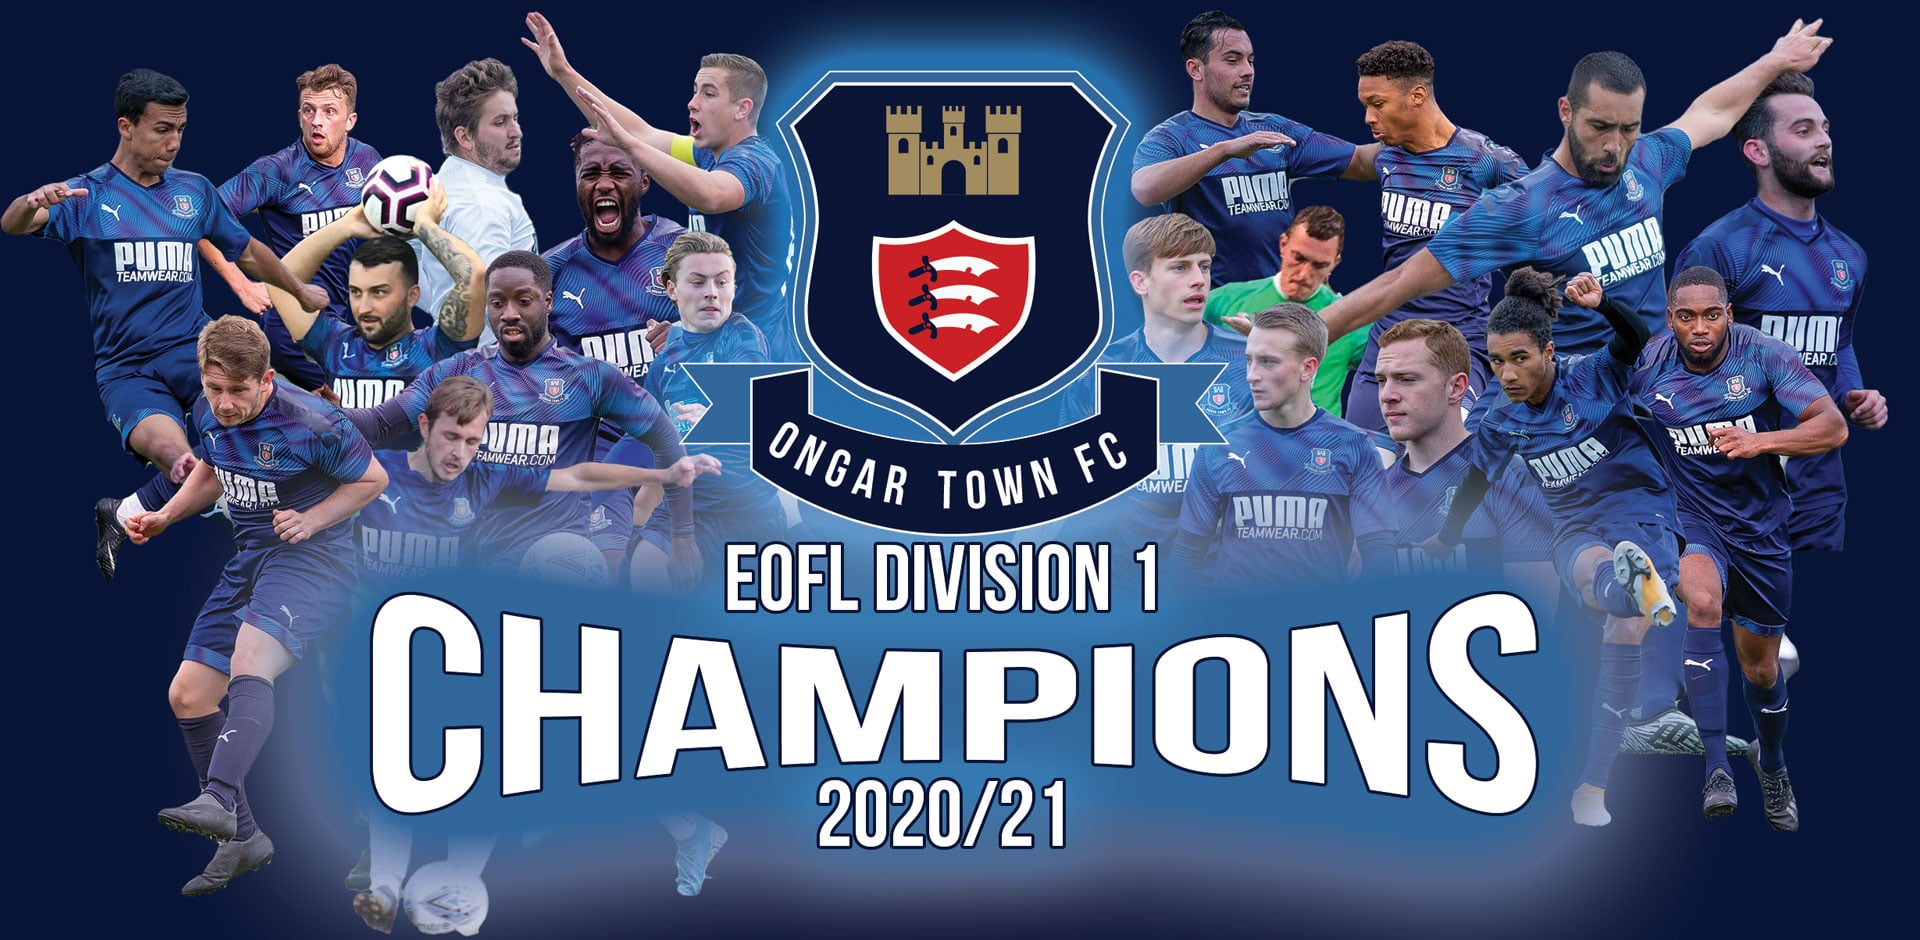 Ongar Town Division one Champions